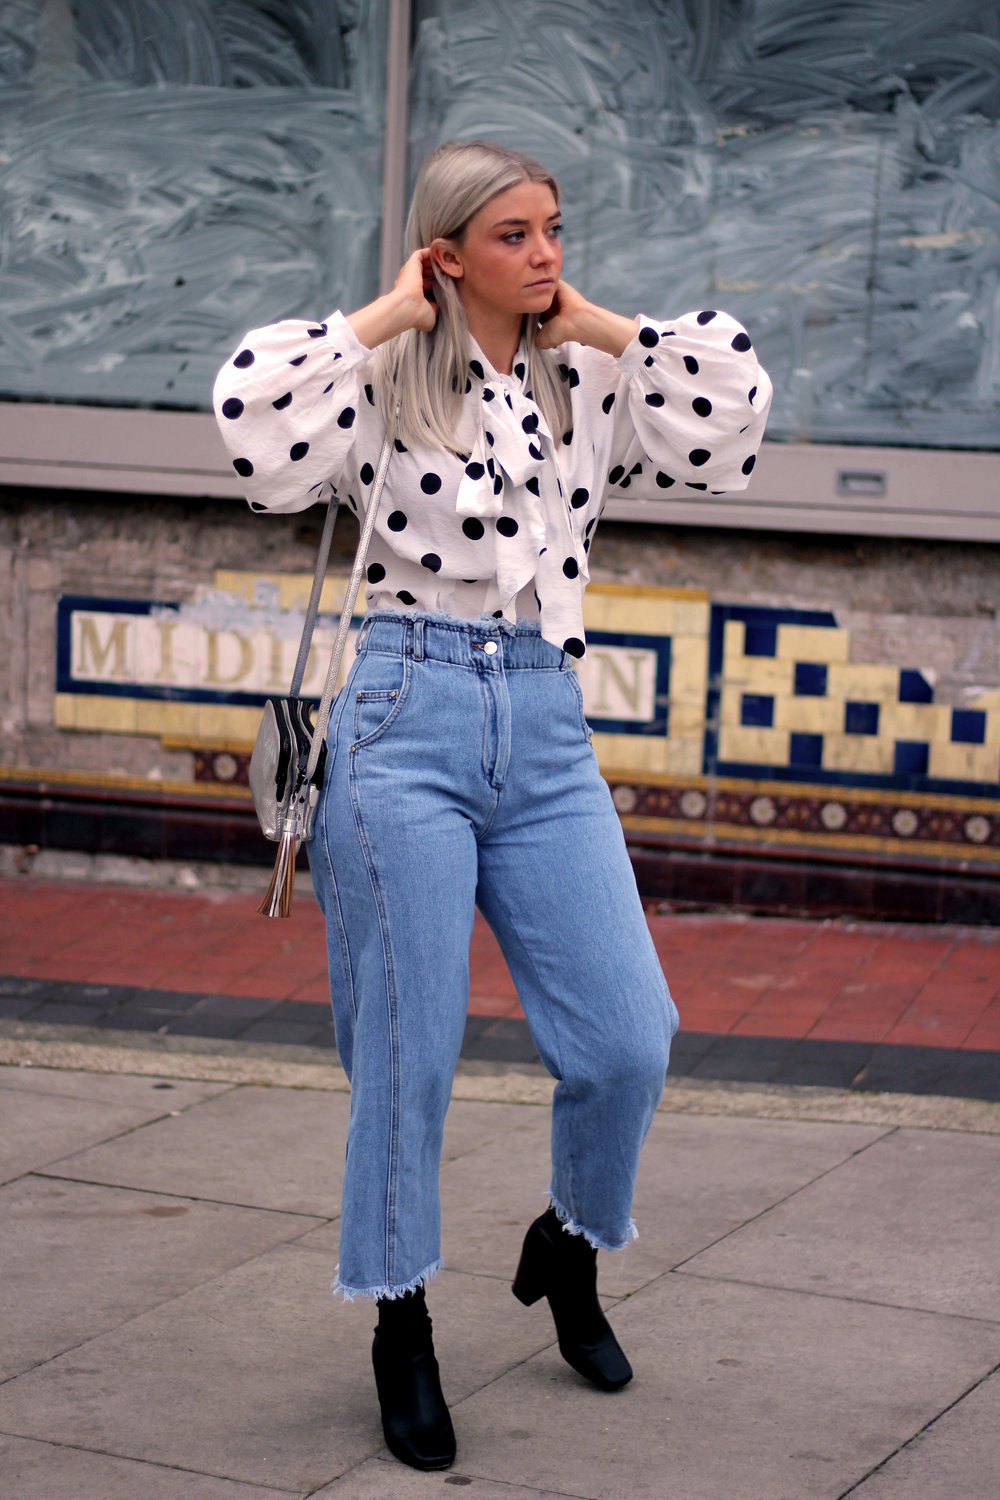 PUSSY BOW POLKA DOT BLOUSE, WIDE LEG FRAYED TOPSHOP JEANS, BLACK ANKLE BOOTS, NORTHERN MAGPIE, JOEY TAYLOR 2